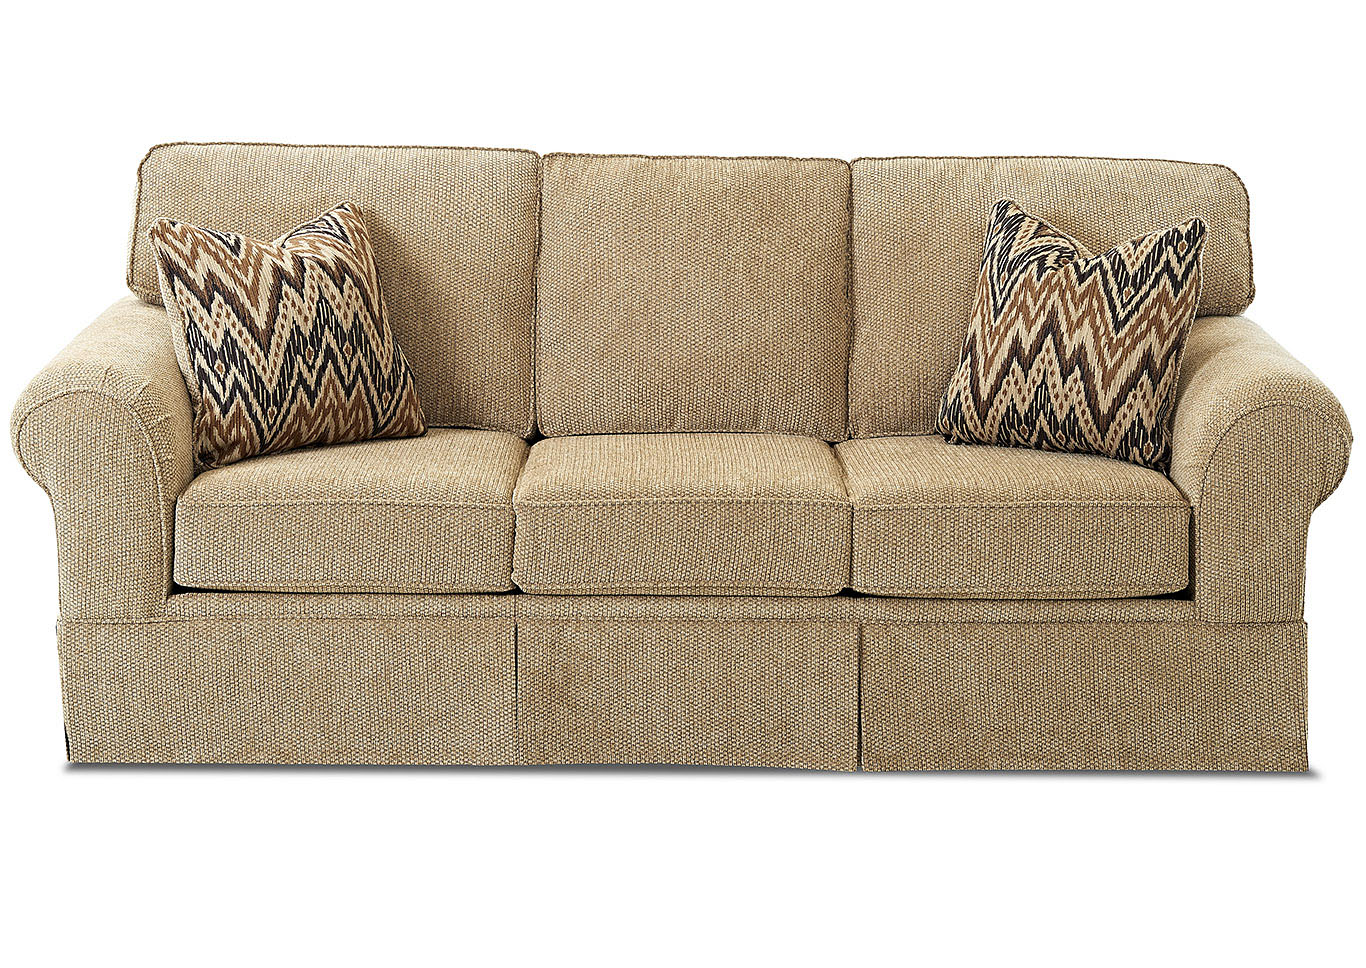 Woodwin Frenzy Cashmere Fabric Sleeper Sofa,Klaussner Home Furnishings